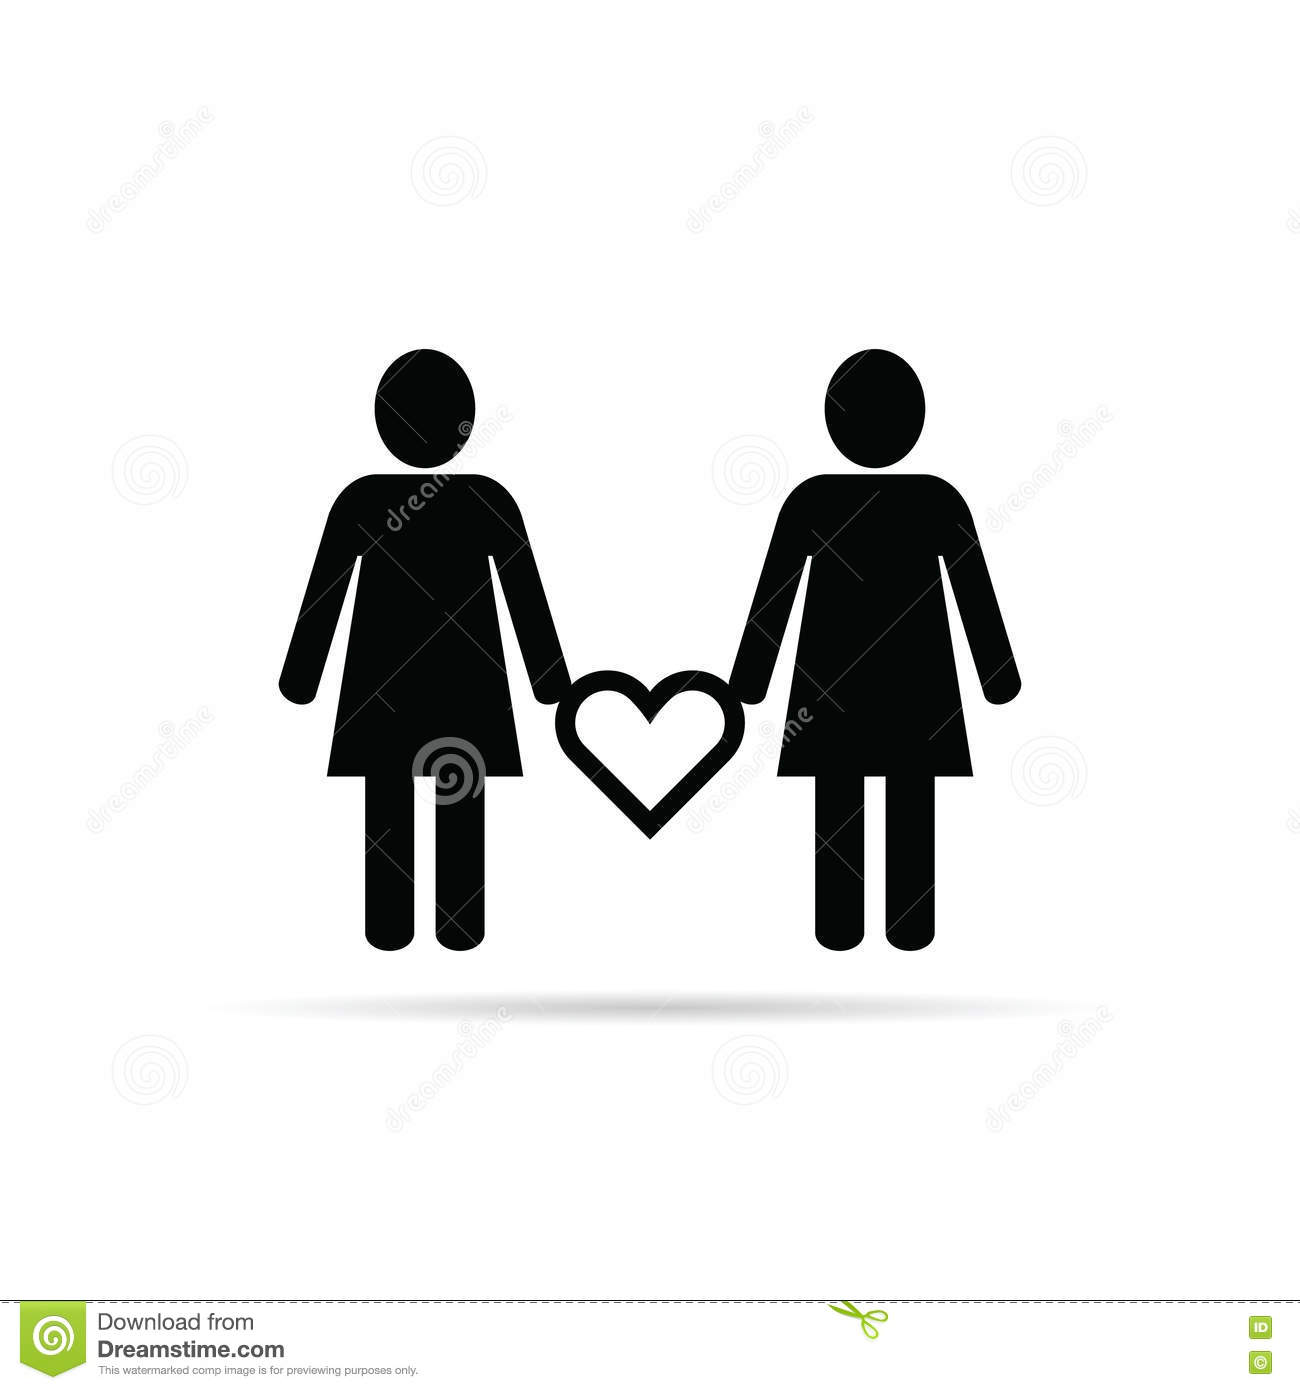 lesbian wedding coloring pages | Lesbian Couple Icon With Heart Set Illustration In Black ...